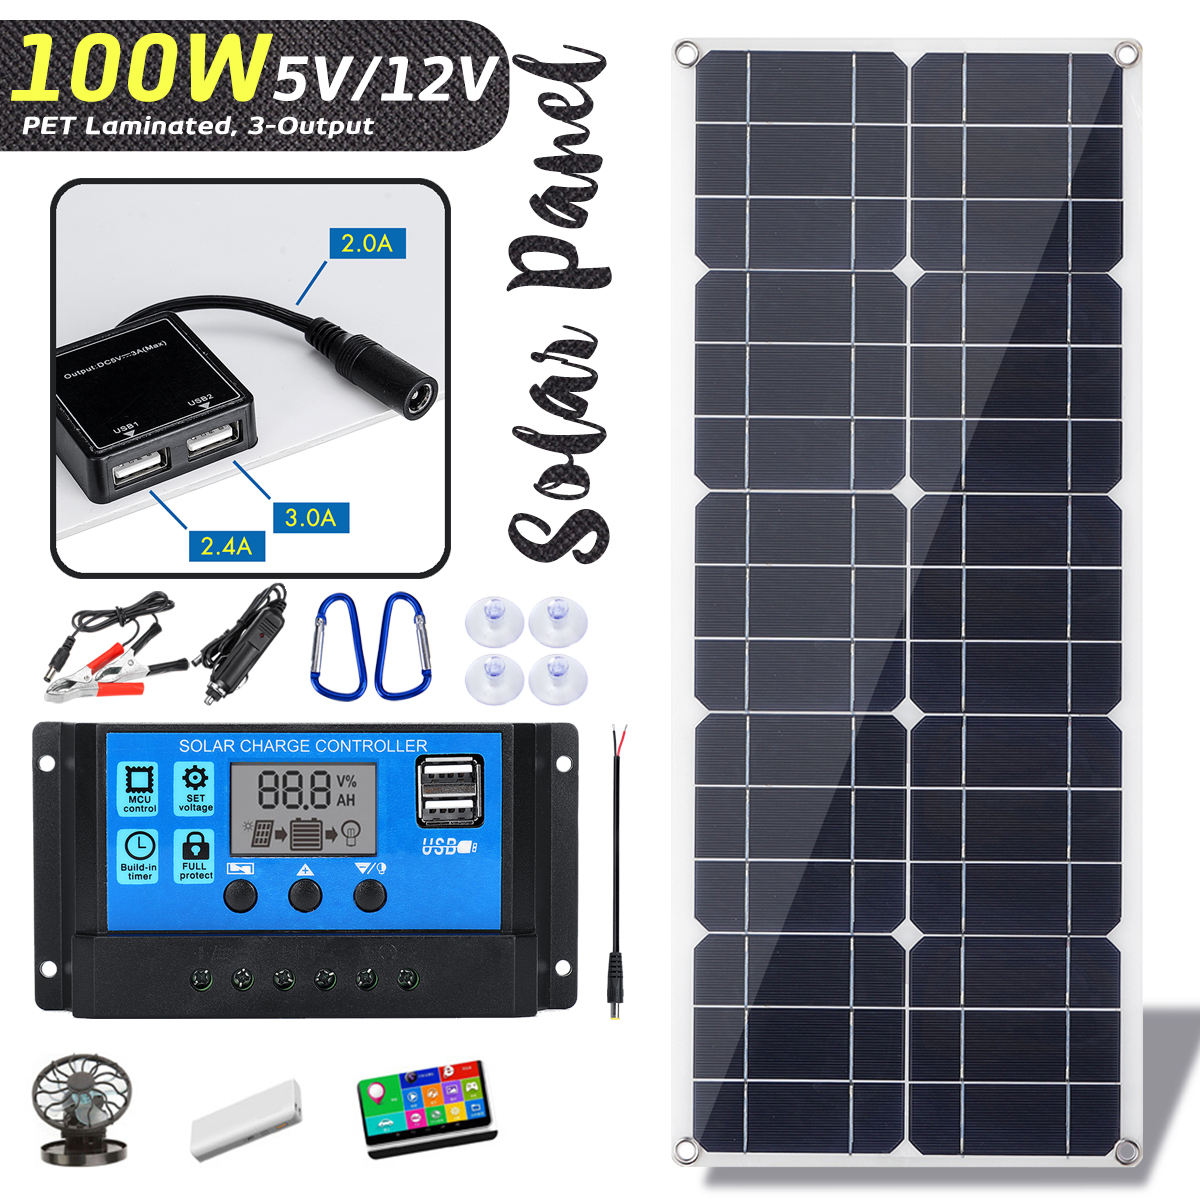 Hot Sales 100W 18V Monocrystaline Solar Panel Dual 12V 5V DC USB Charger Kit with 10A Solar Controller  amp  Cables for Outdoor